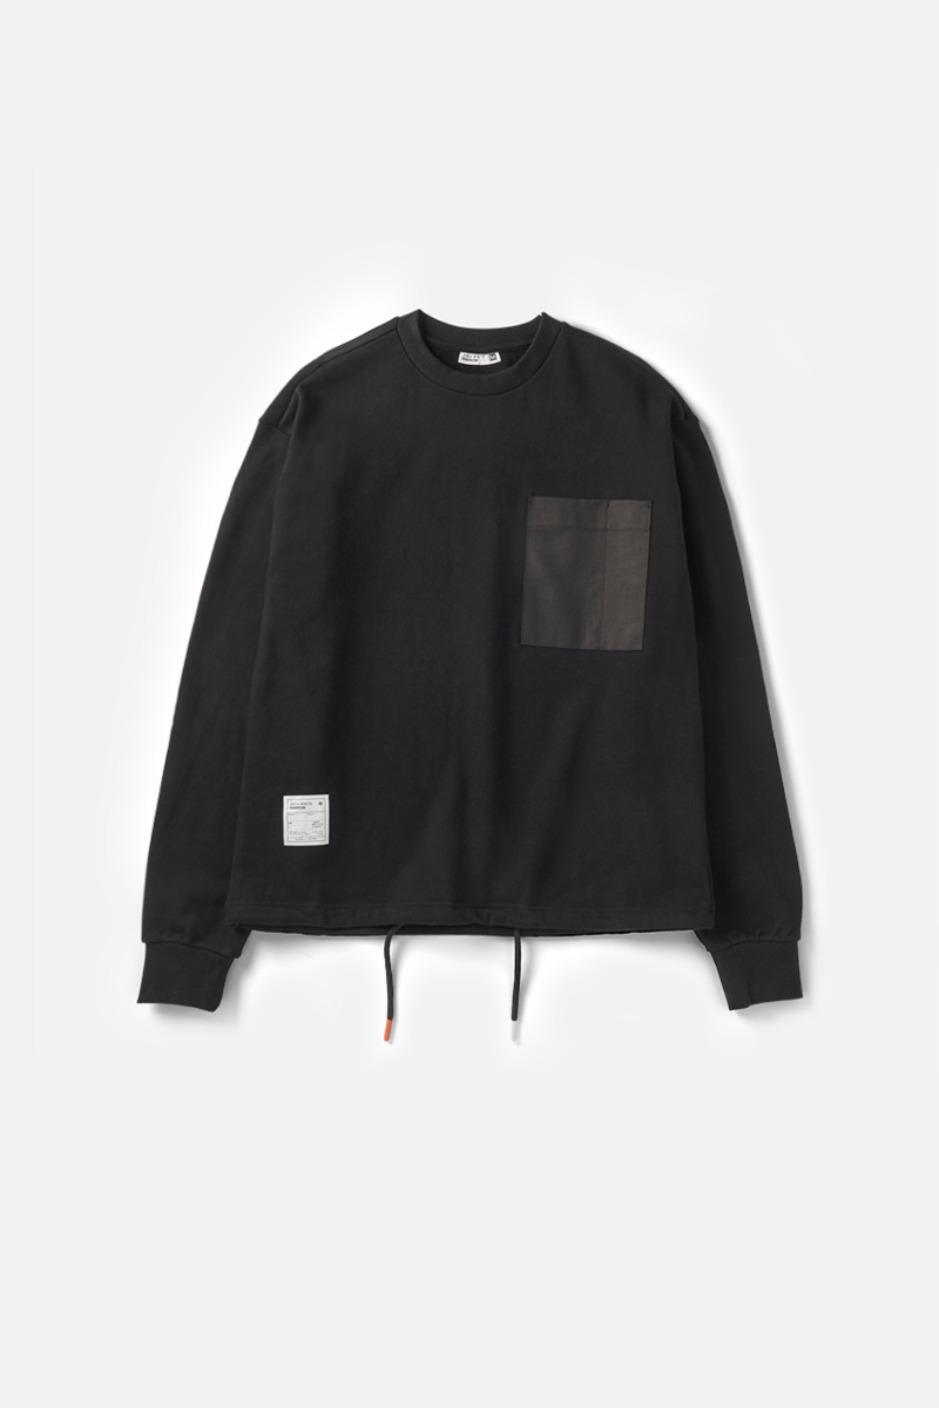 RAWROW X AECA WHITE STRING SWEAT SHIRT-BLACK